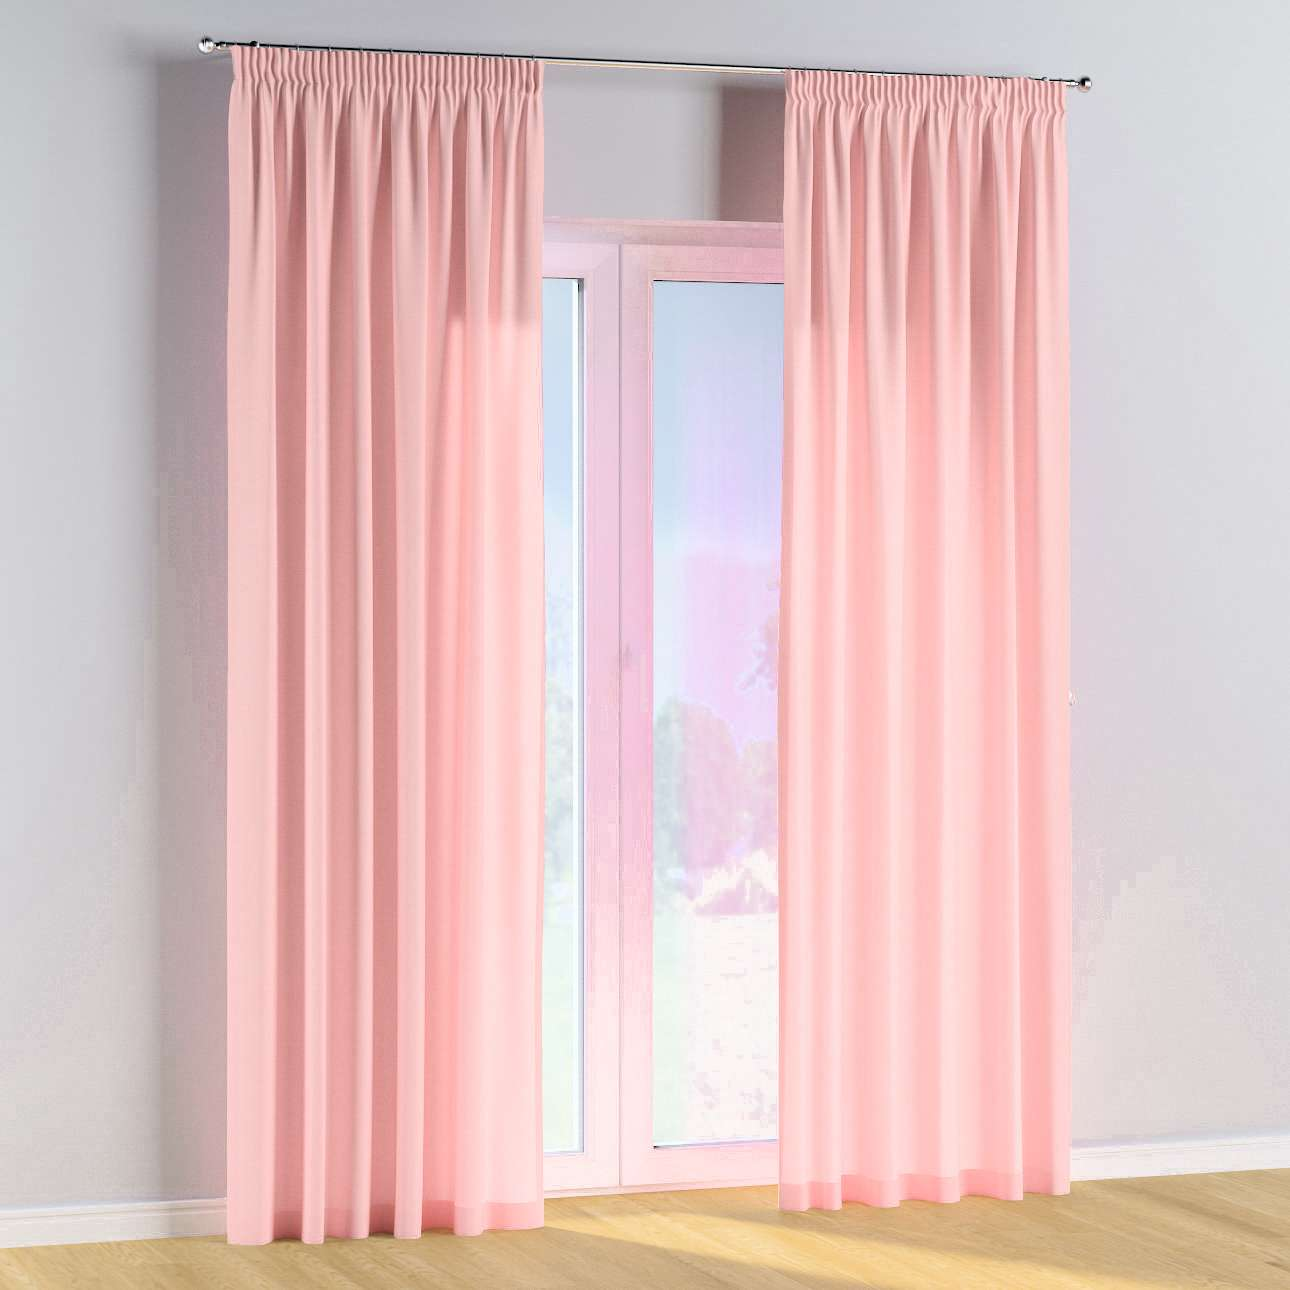 Pencil pleat curtains in collection Happiness, fabric: 133-39